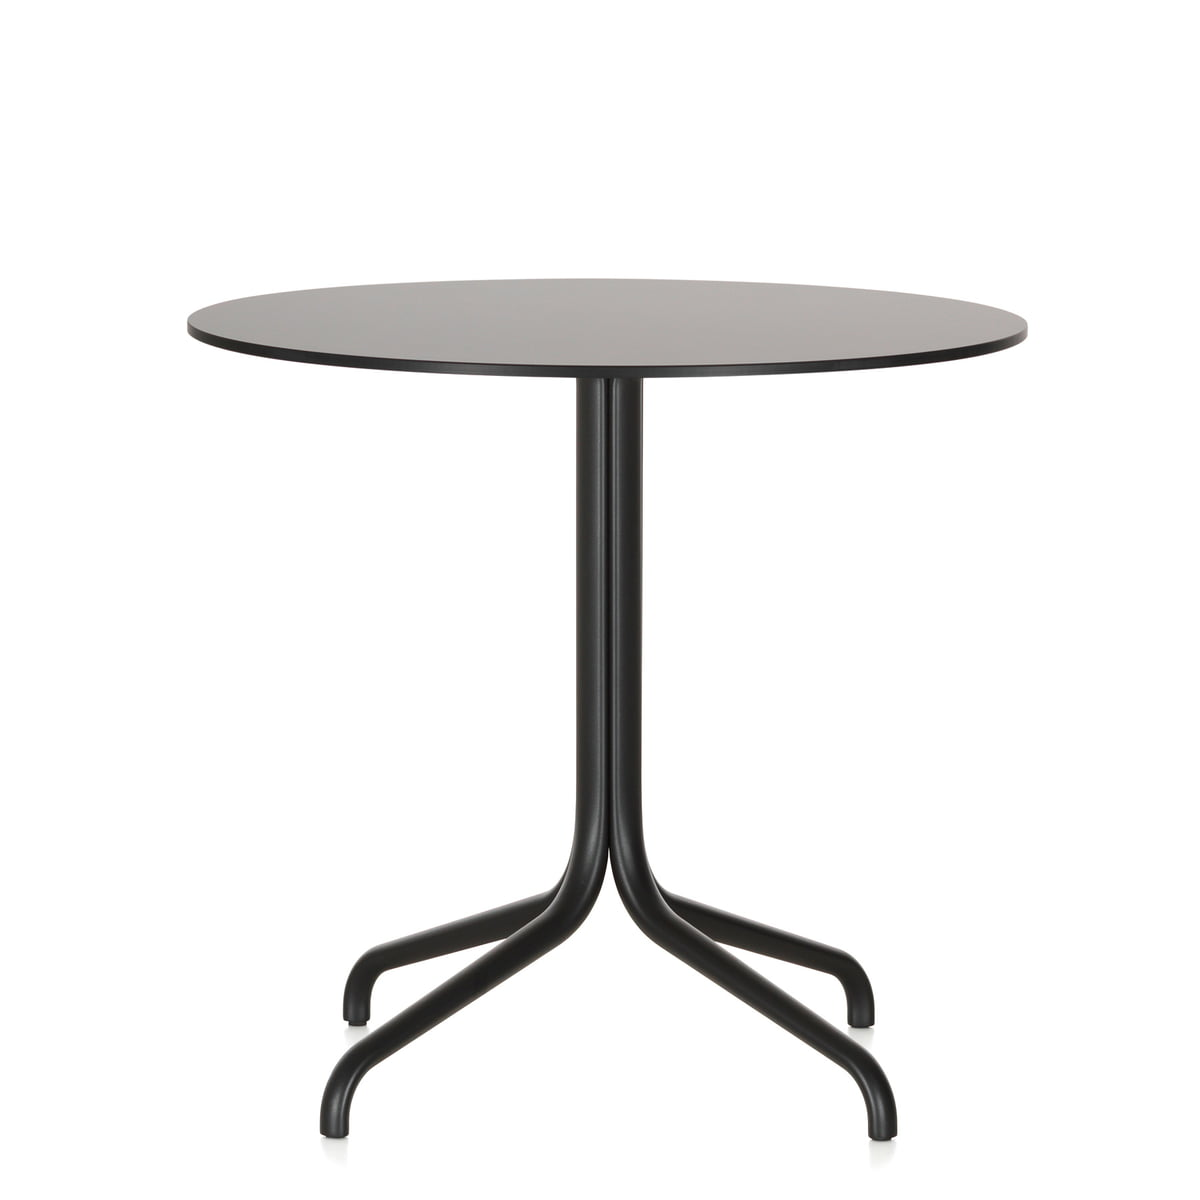 Tisch Vitra Belleville Bistro Table Indoor Round By Vitra